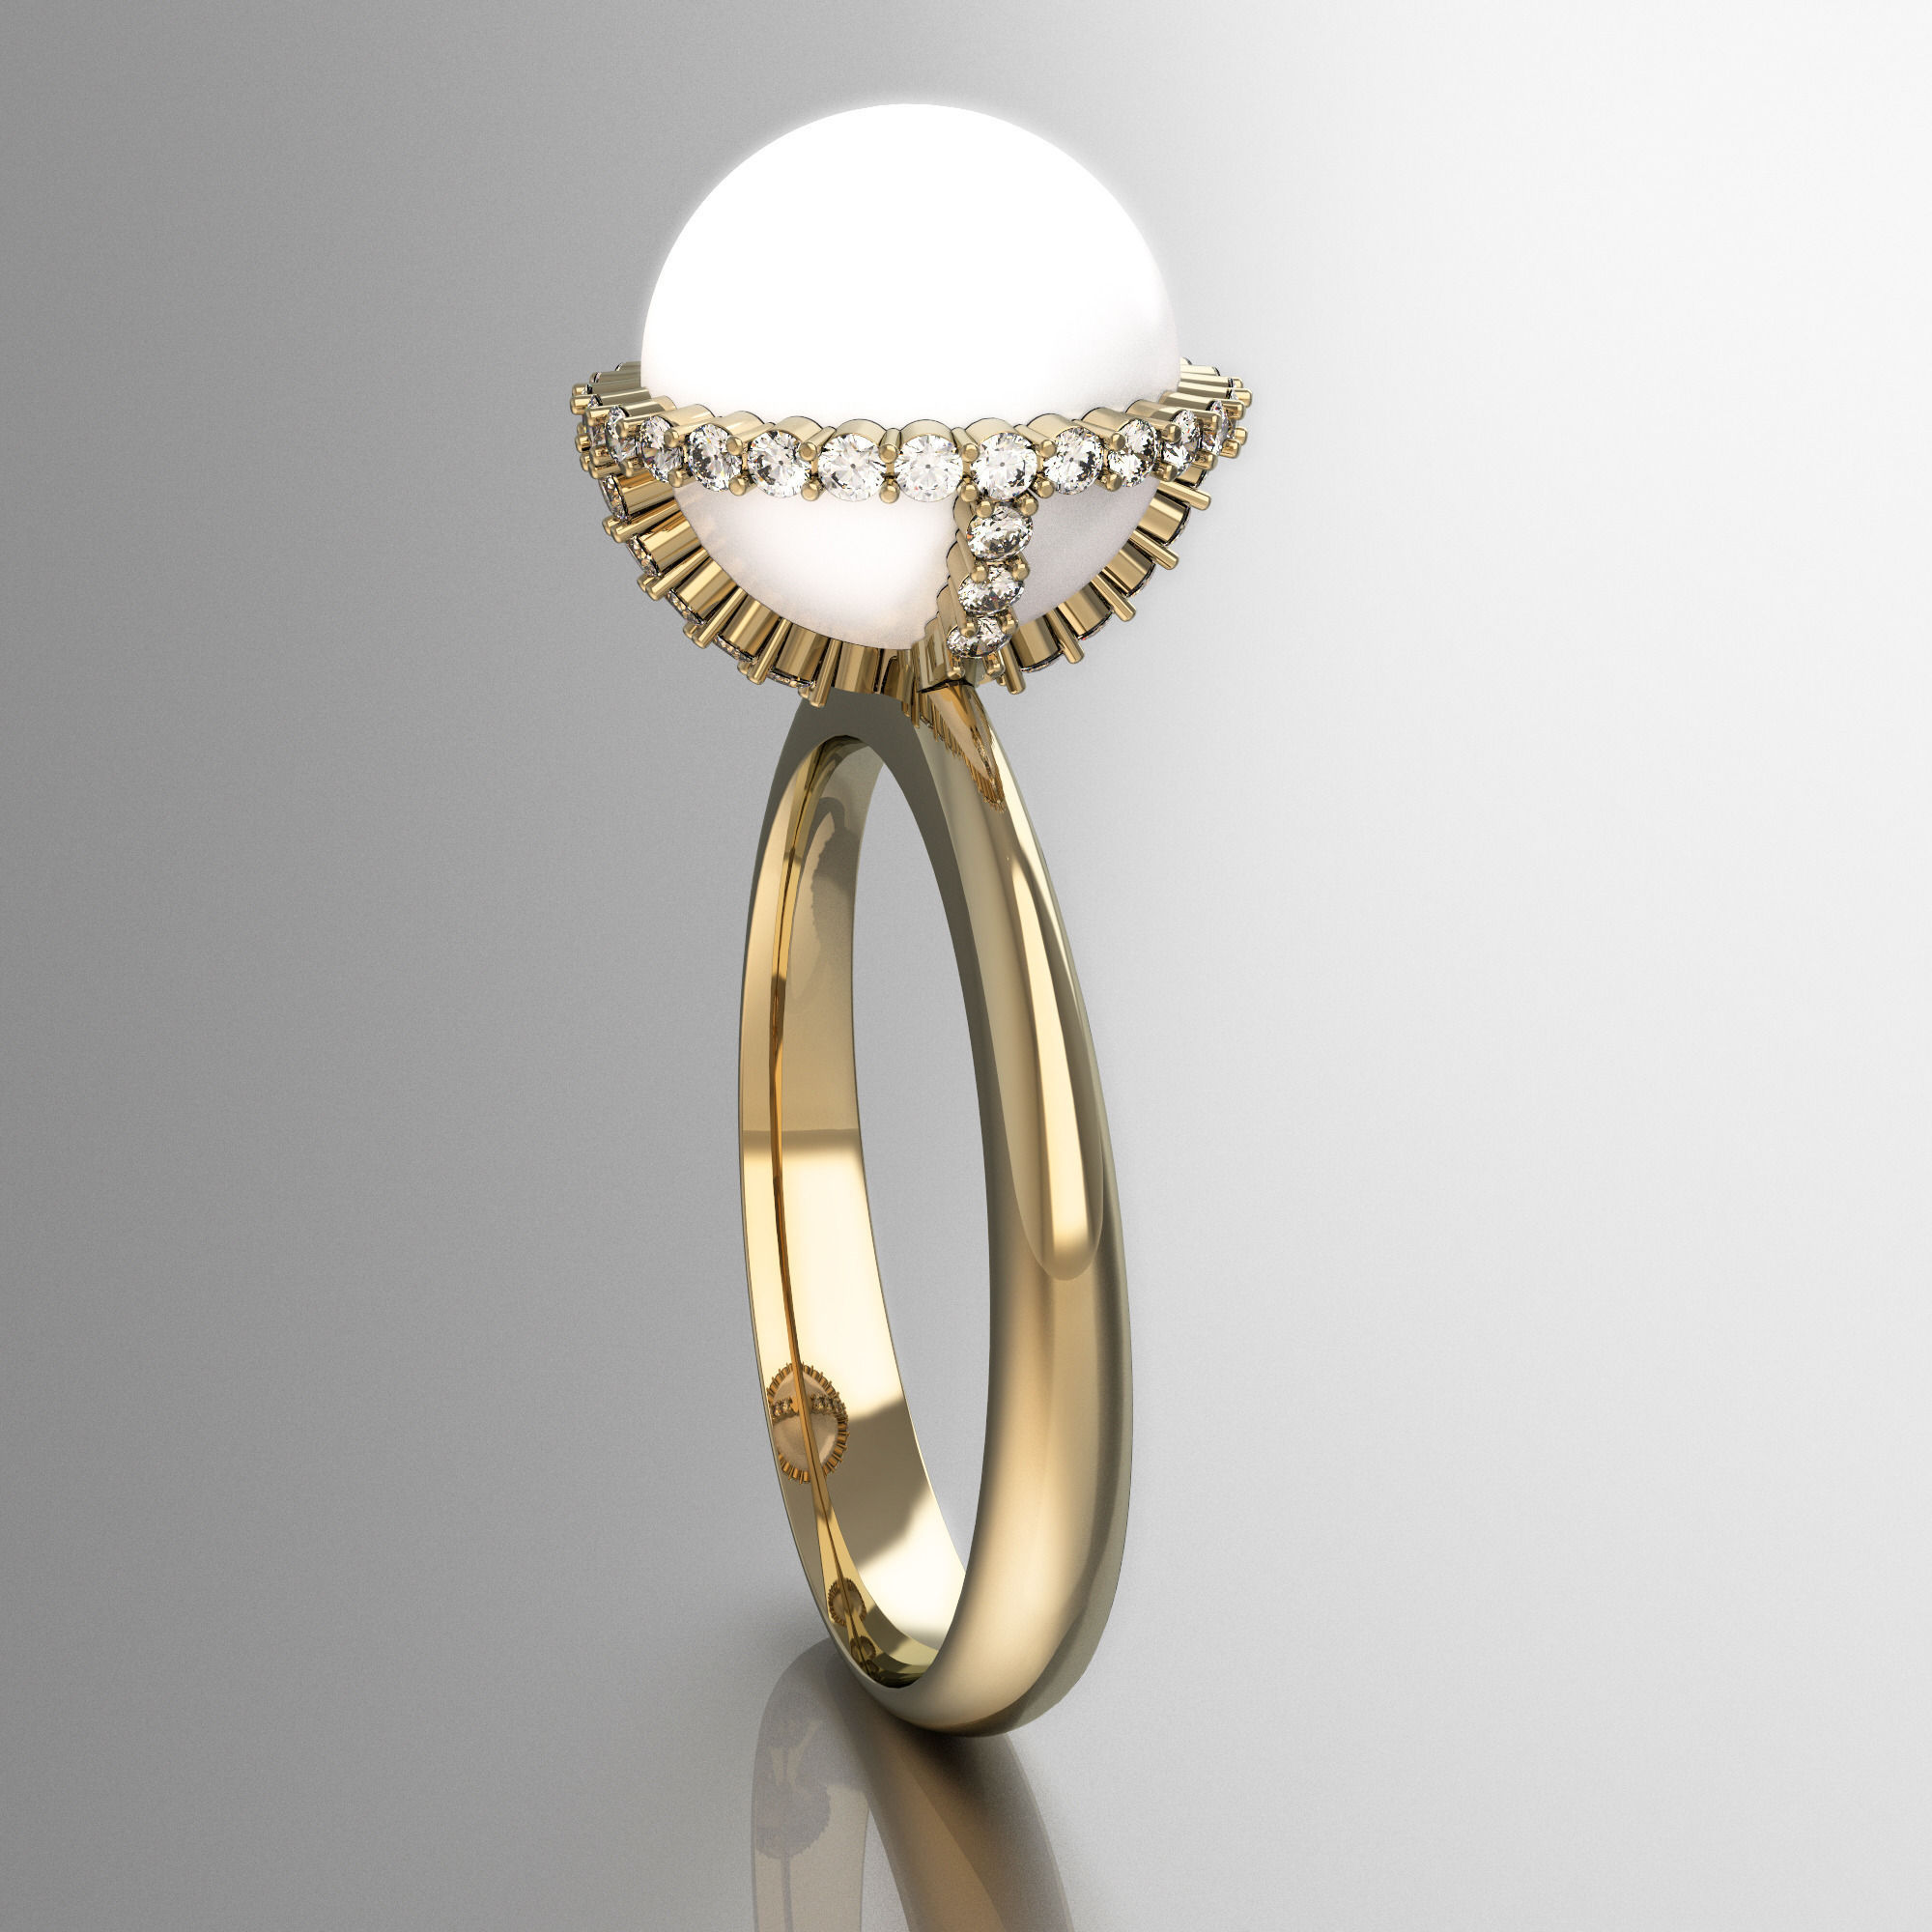 silver jewelry wedding shop pearl made image rings josien design on designed in crowdyhouse belgium xx by ring baetens